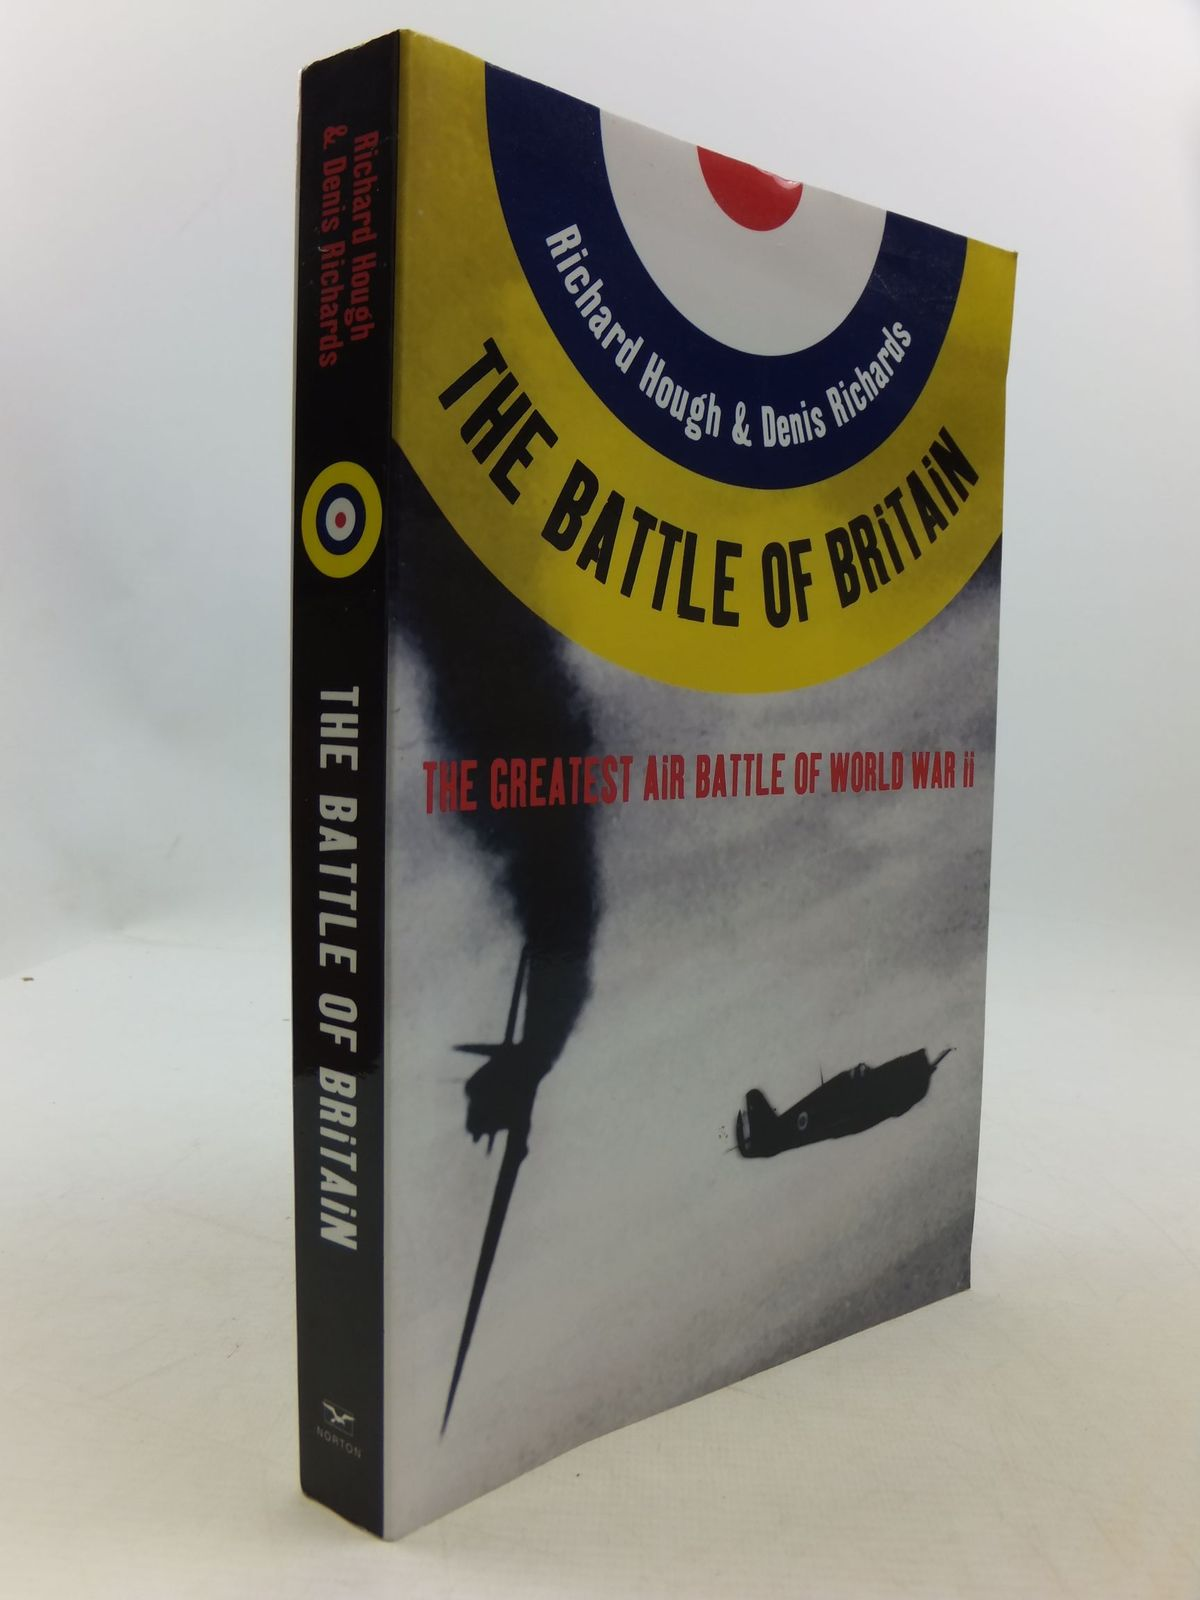 Photo of THE BATTLE OF BRITAIN THE GREATEST AIR BATTLE OF WORLD WAR II written by Hough, Richard<br />Richards, Denis published by W.W. Norton & Company Inc. (STOCK CODE: 1708494)  for sale by Stella & Rose's Books